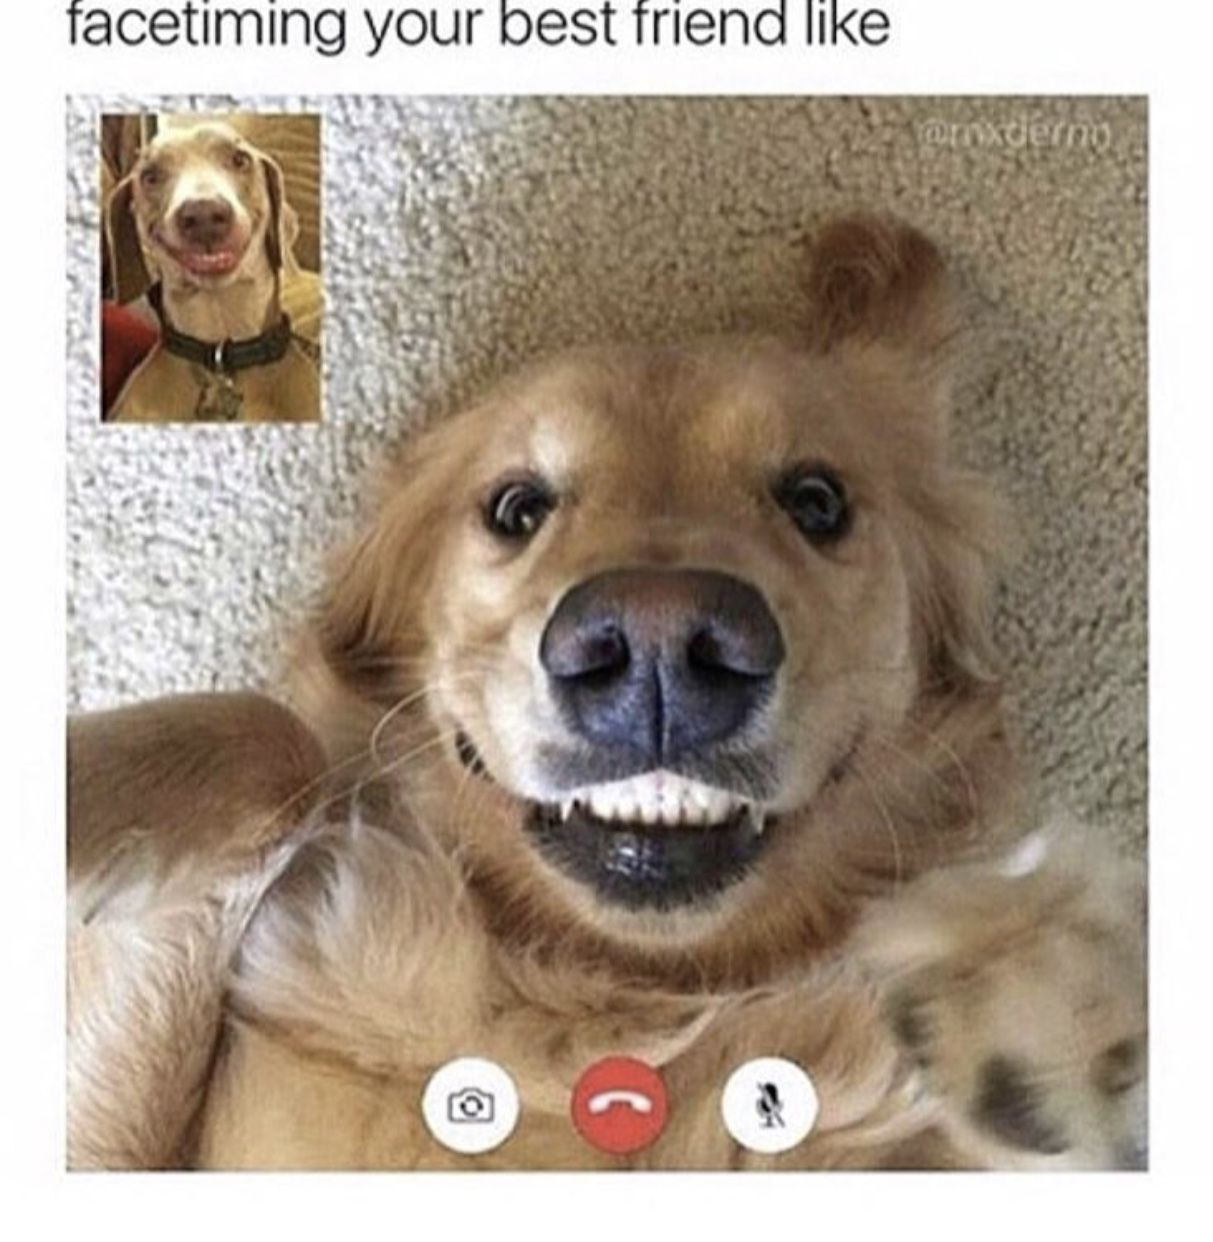 Pin By Emi Knott On Memes Others Funny Friend Memes Funny Pictures Funny Animal Memes